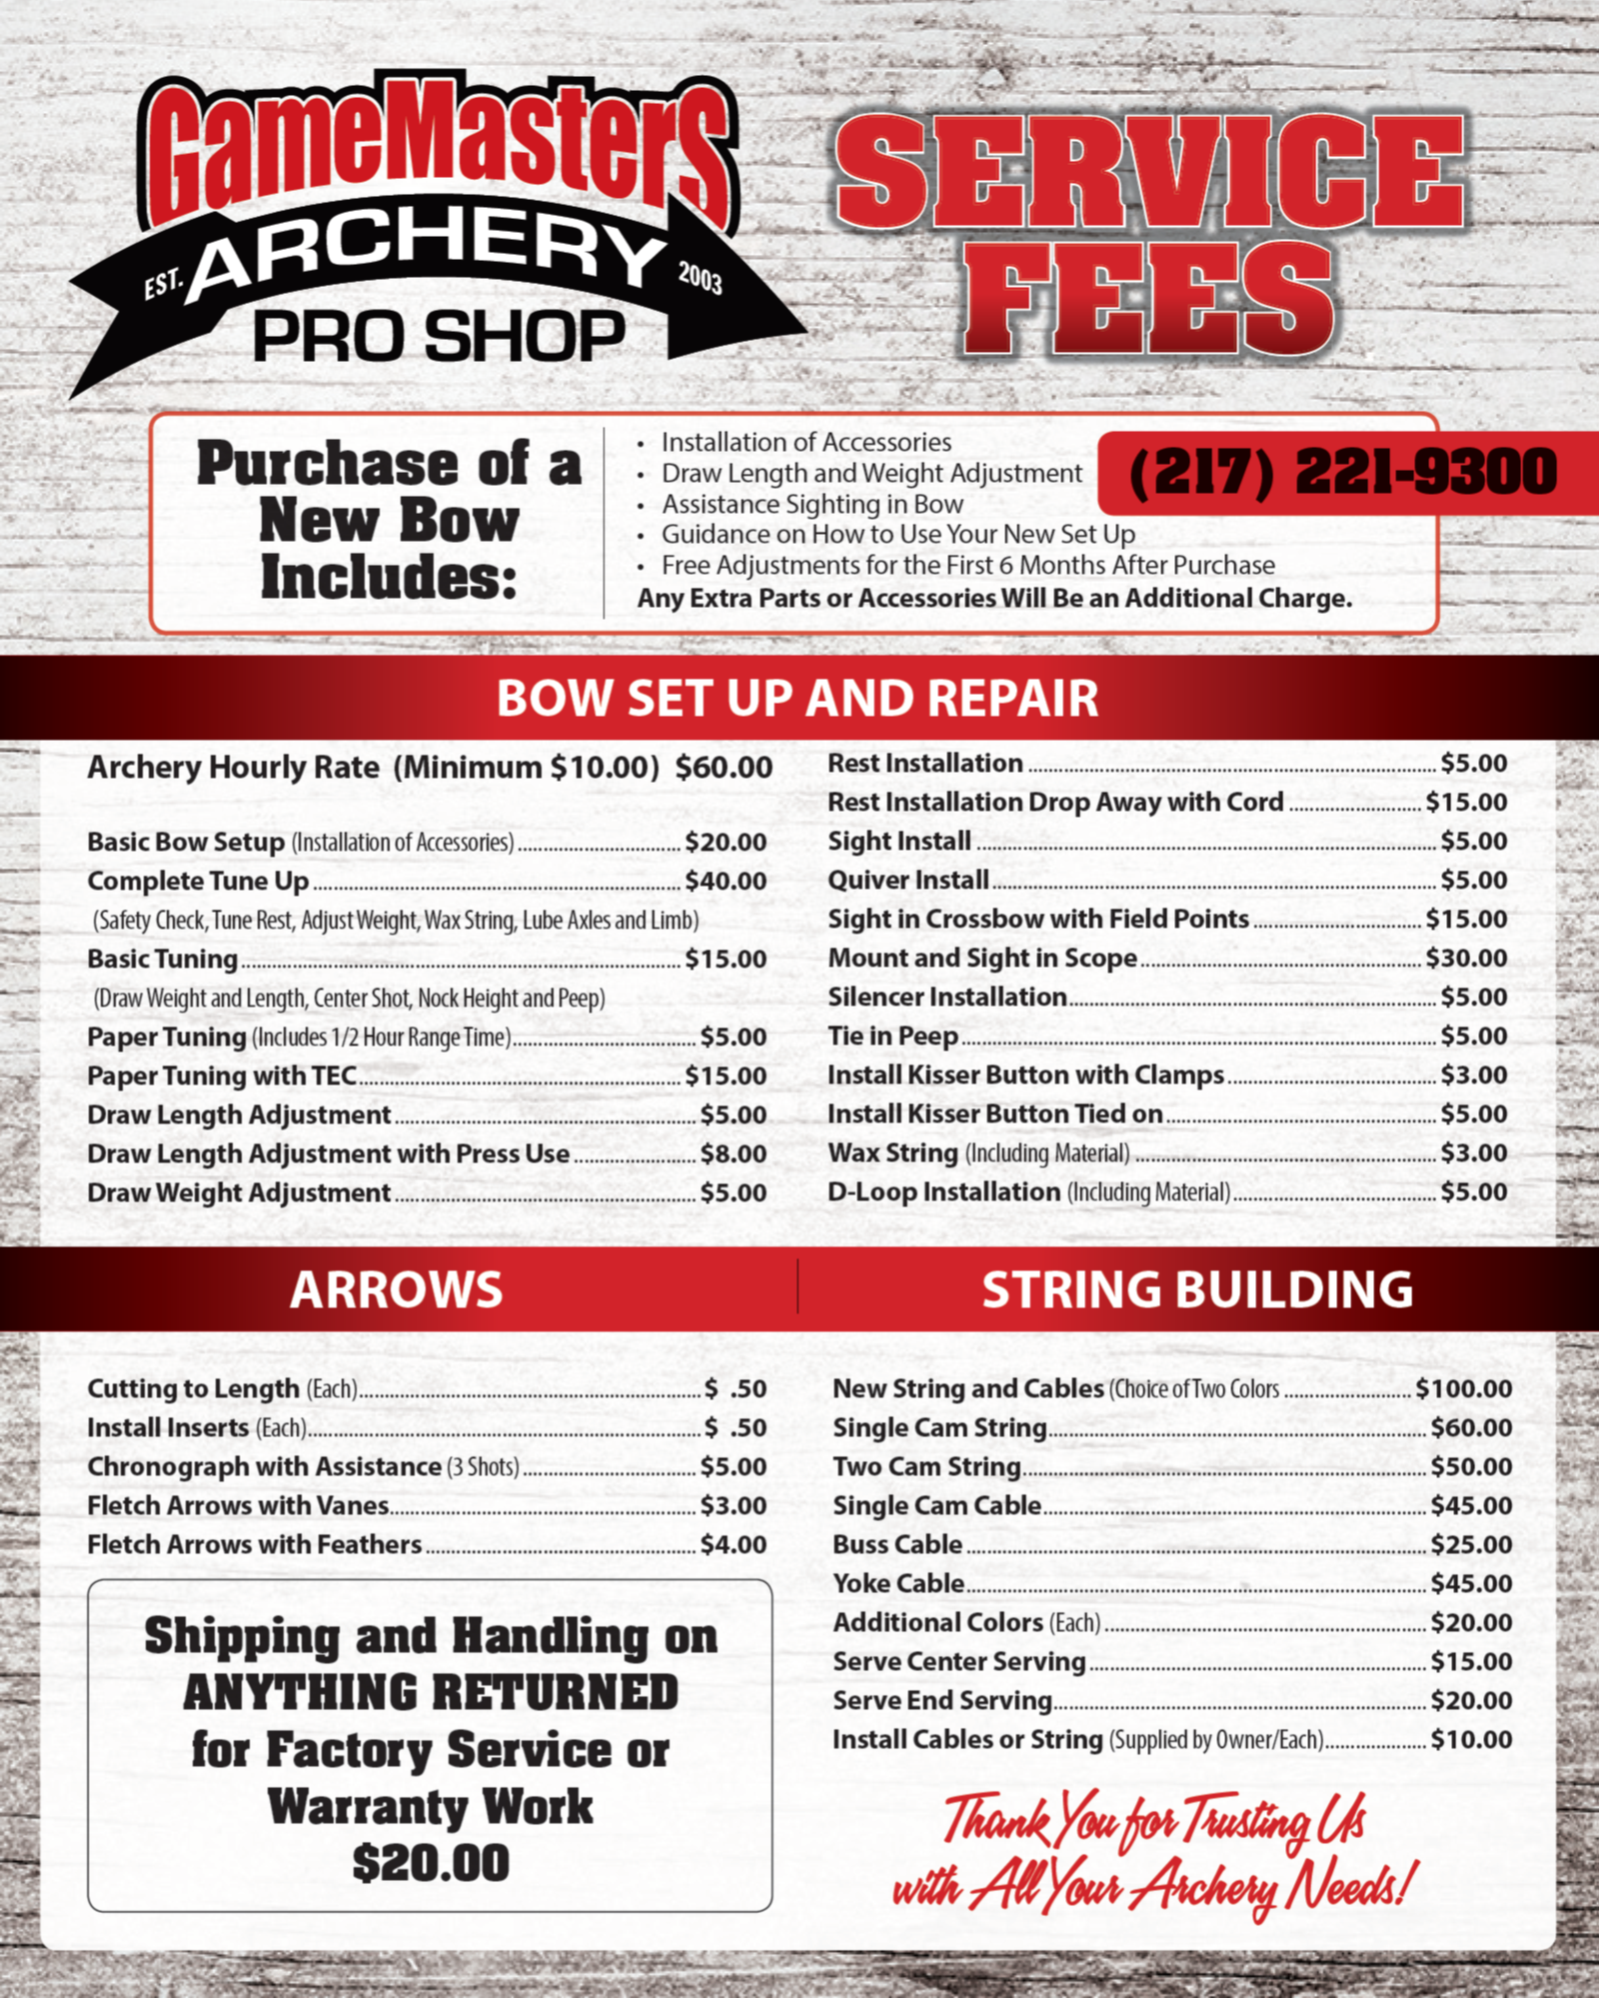 archery-fee-s.png